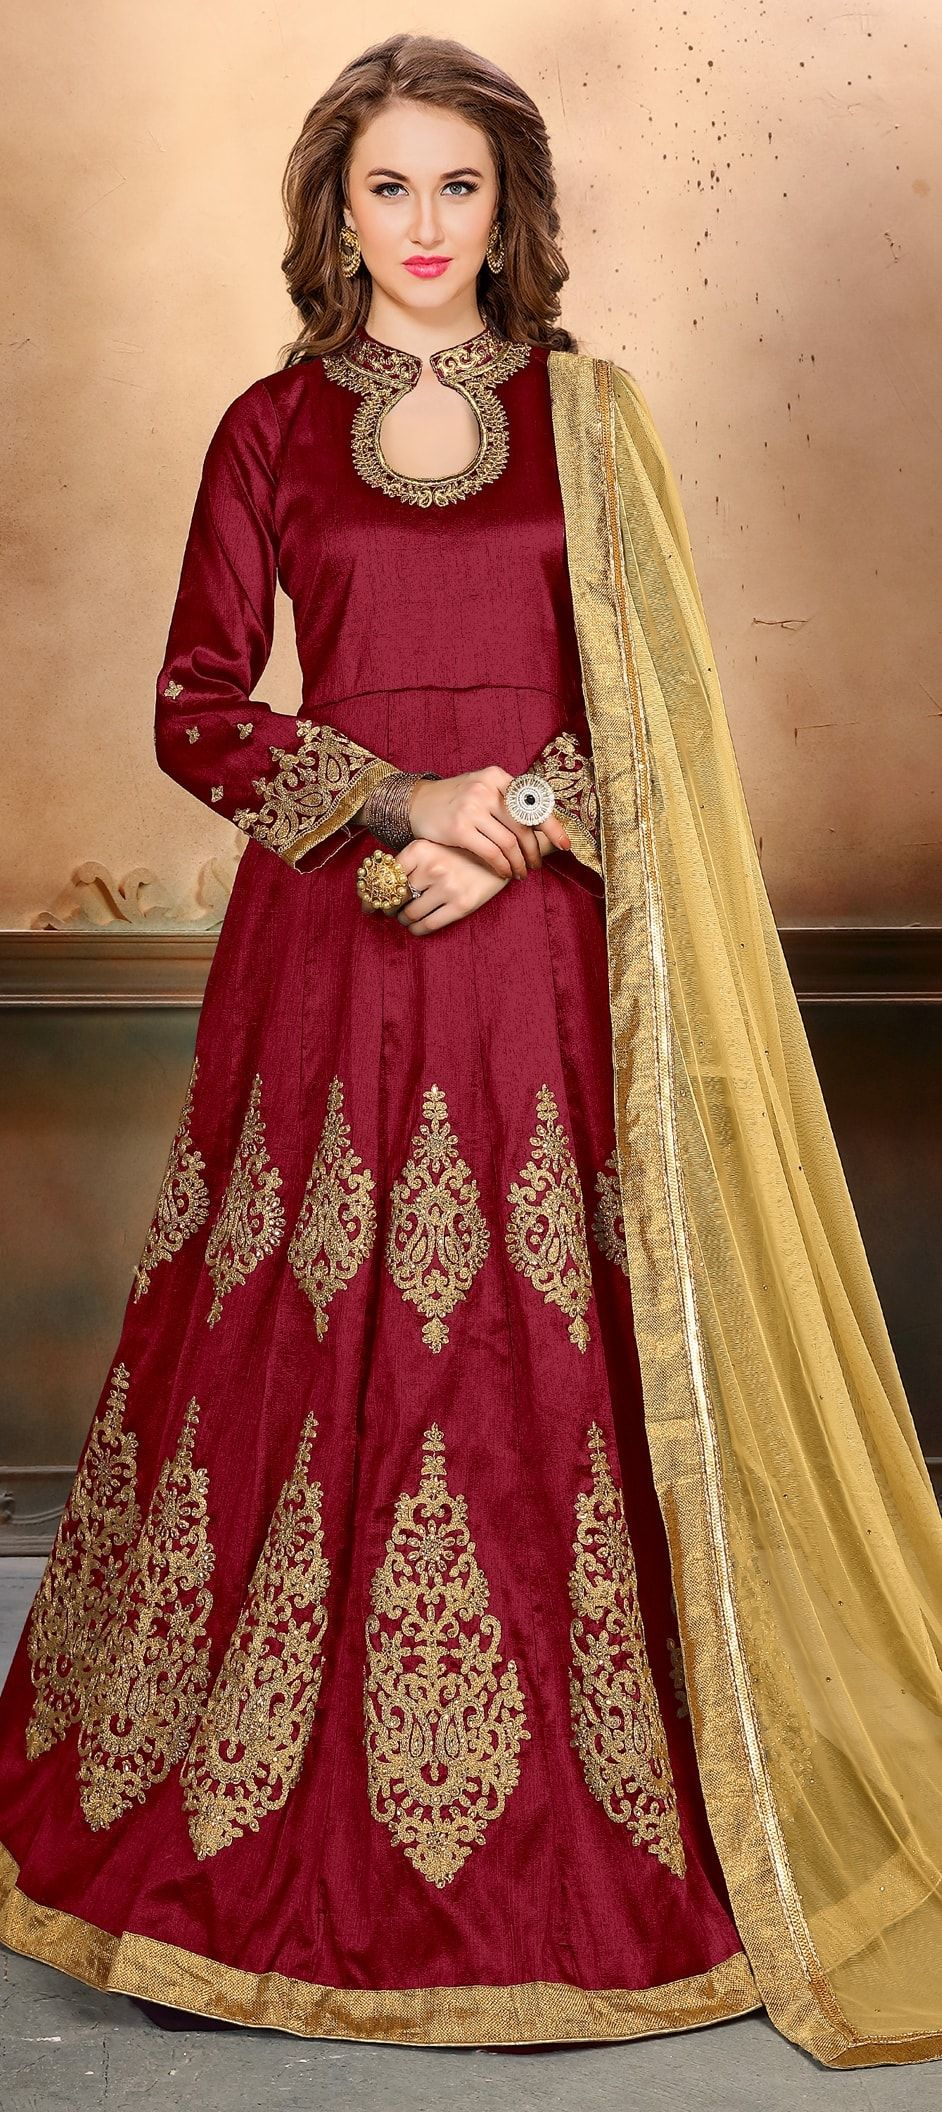 87fb47e481 909536: Red and Maroon color family stitched Anarkali Suits .